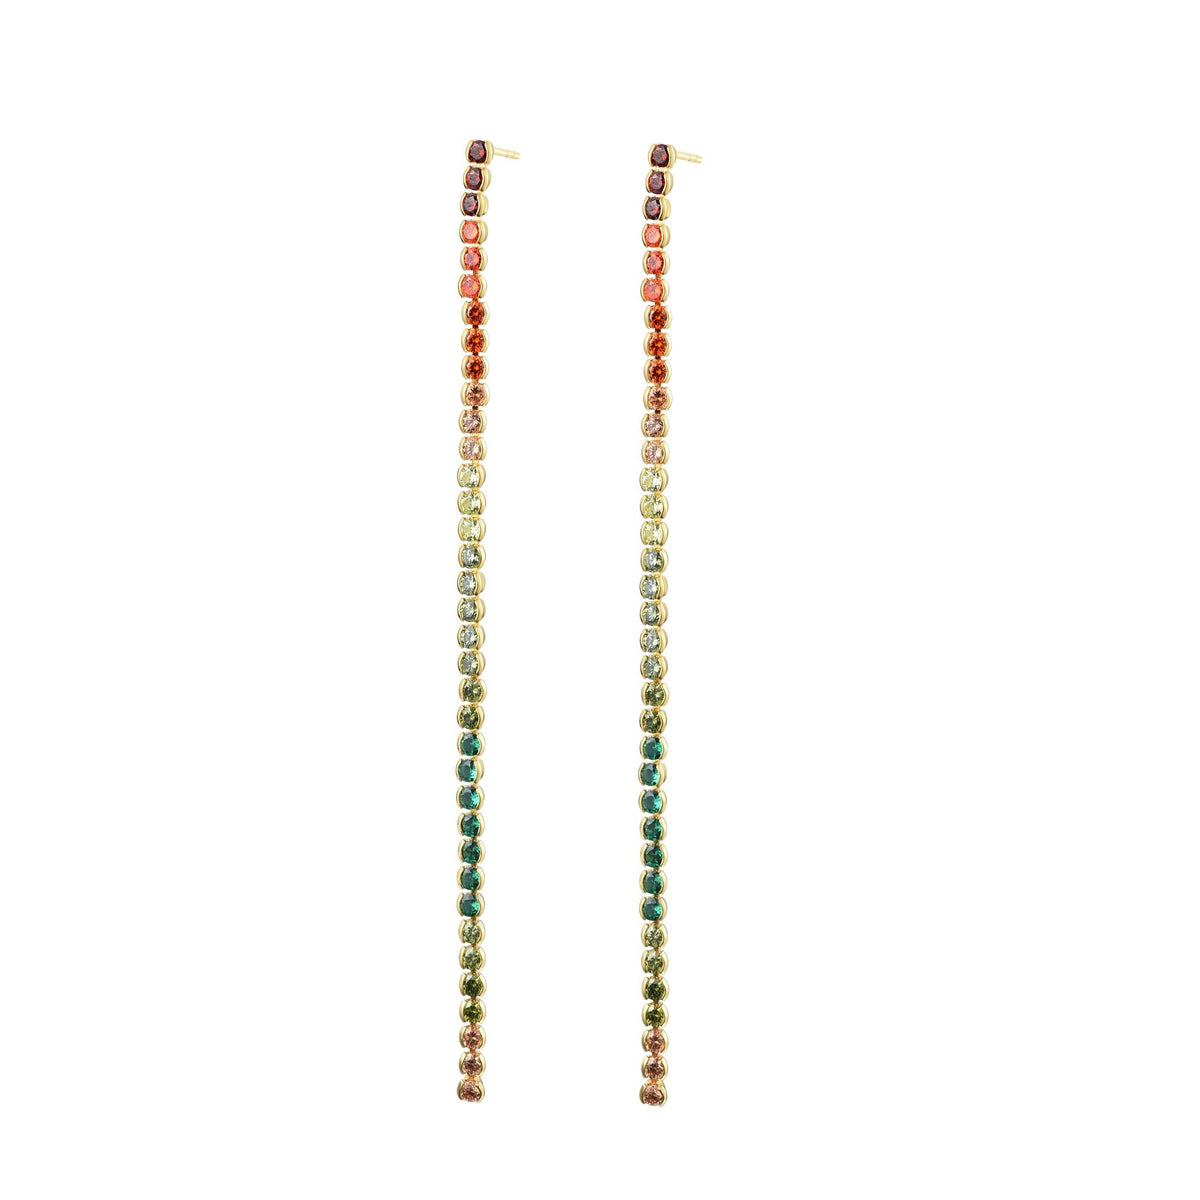 Ferentina | Macaron Earrings | 925 Silver | Multicolor CZ | 18K Gold Plated